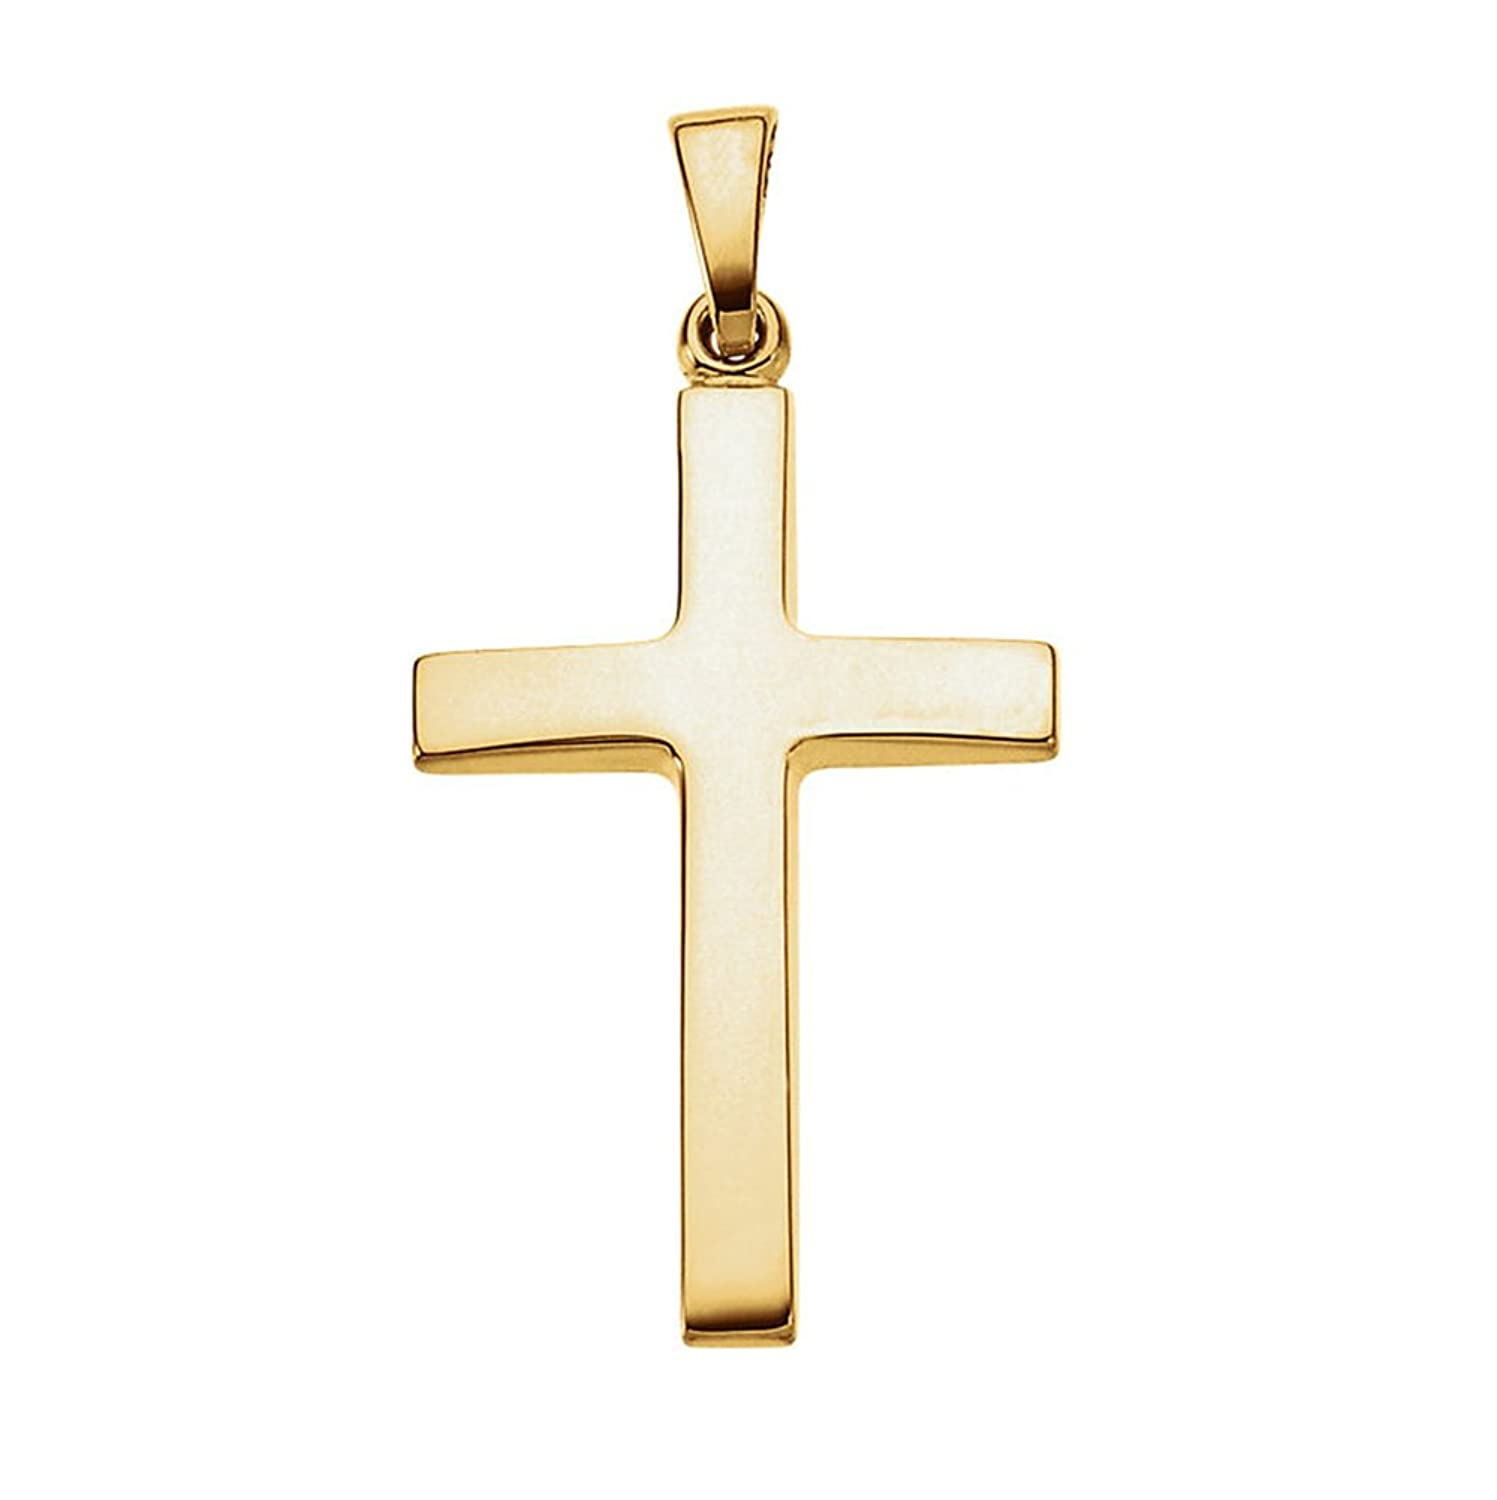 14K Gold Smooth Tapered Cross Pendant, 1.1 In (29mm)